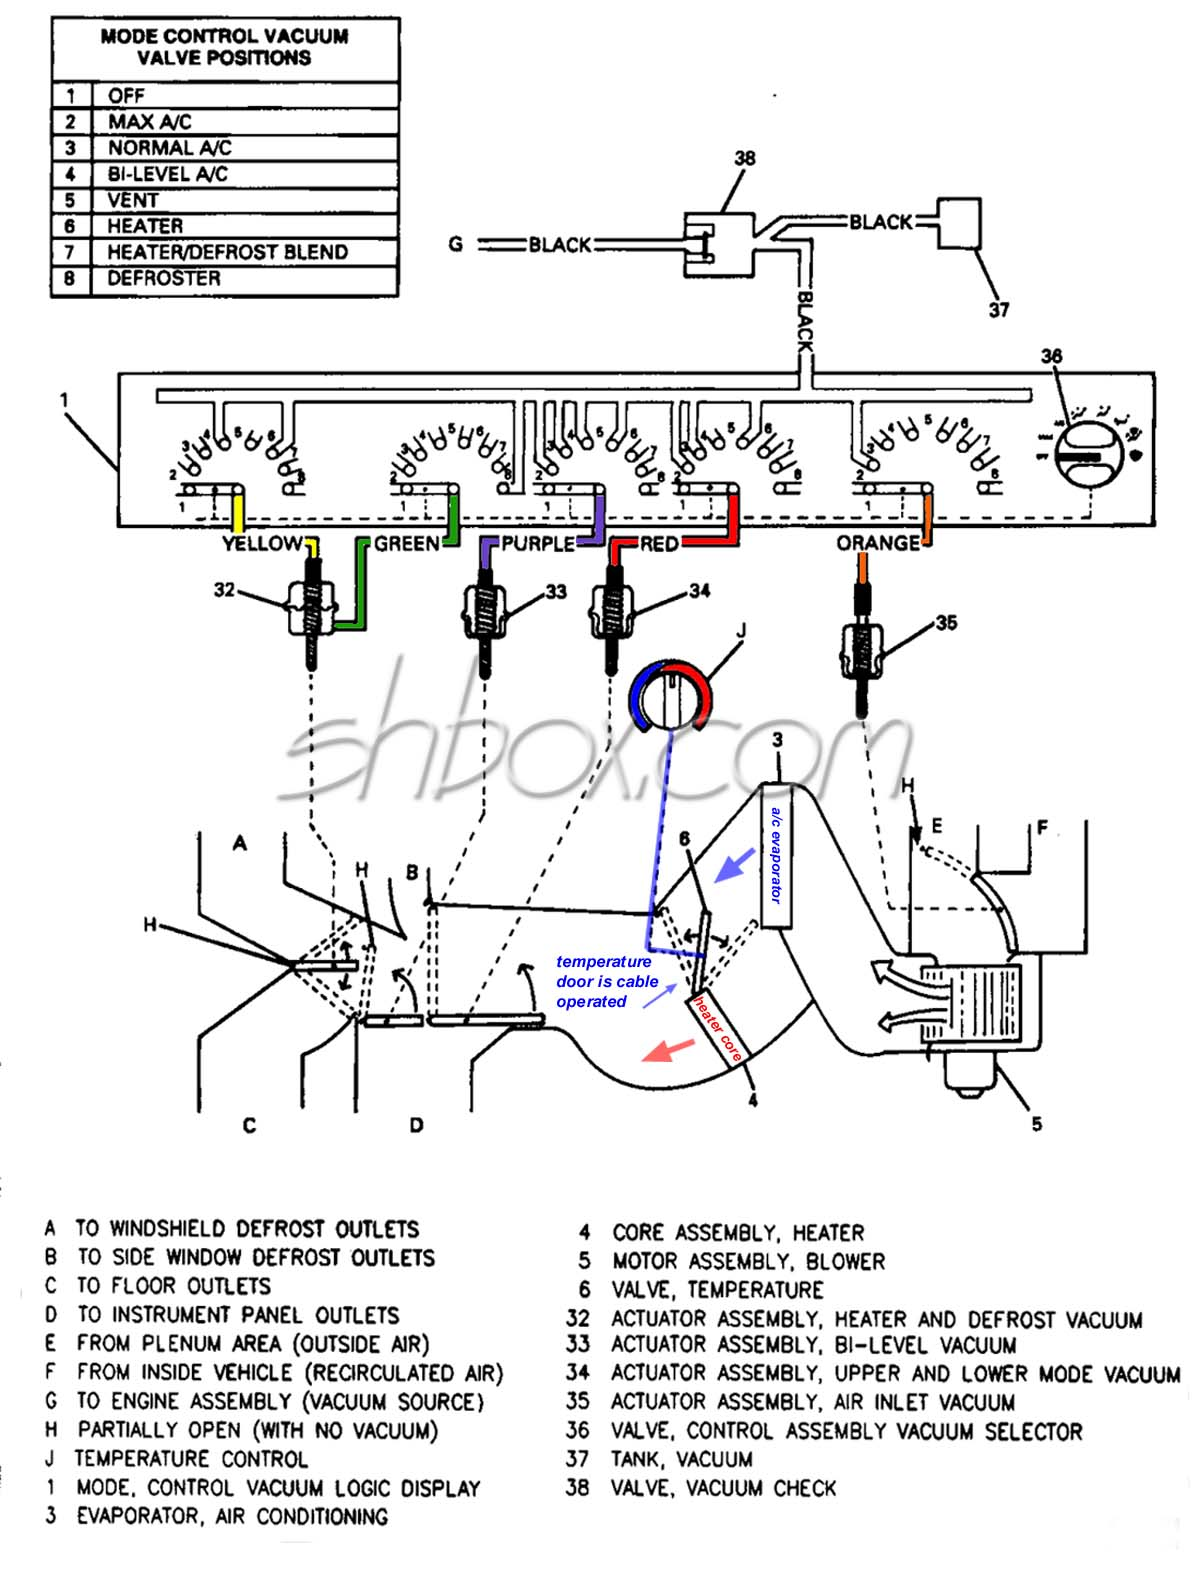 Ford 3 7 Engine Diagram Car Wiring Diagrams Explained Source · 4th gen lt1  f body tech aids drawings exploded views rh shbox com 96 camaro v6